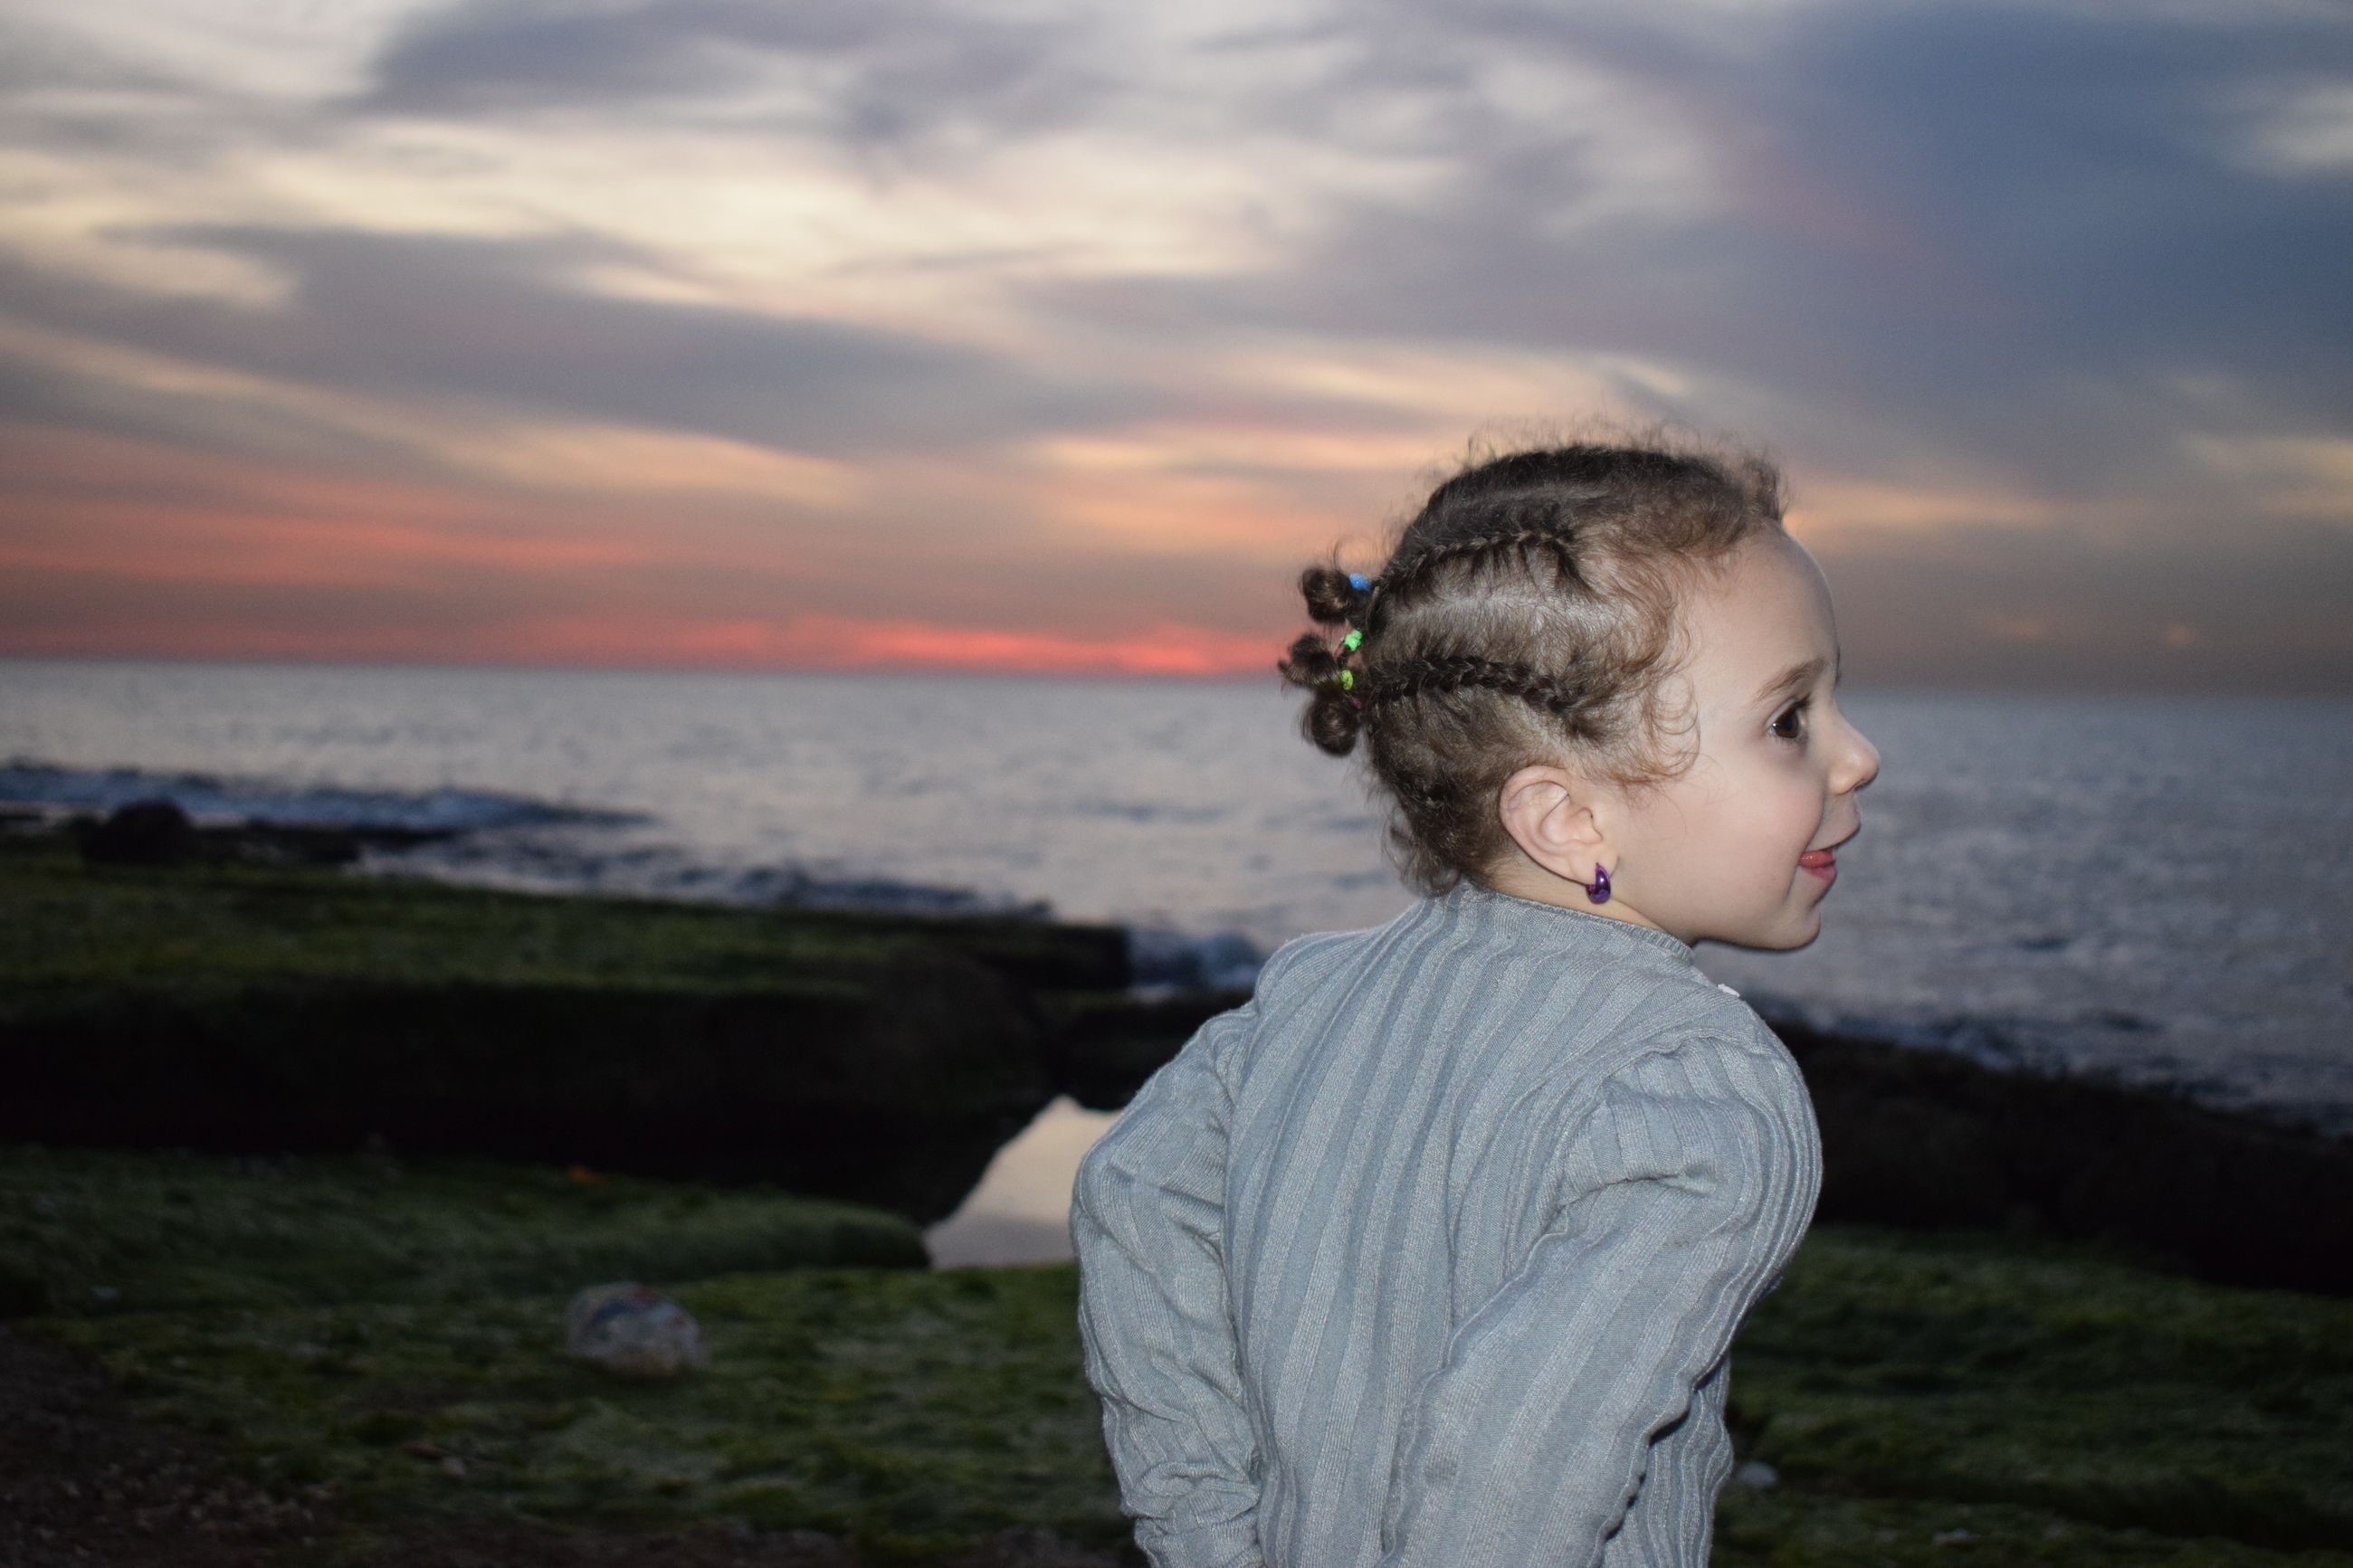 water, sea, sky, childhood, child, leisure activity, one person, lifestyles, land, real people, cloud - sky, standing, sunset, nature, beauty in nature, beach, boys, casual clothing, horizon over water, innocence, outdoors, contemplation